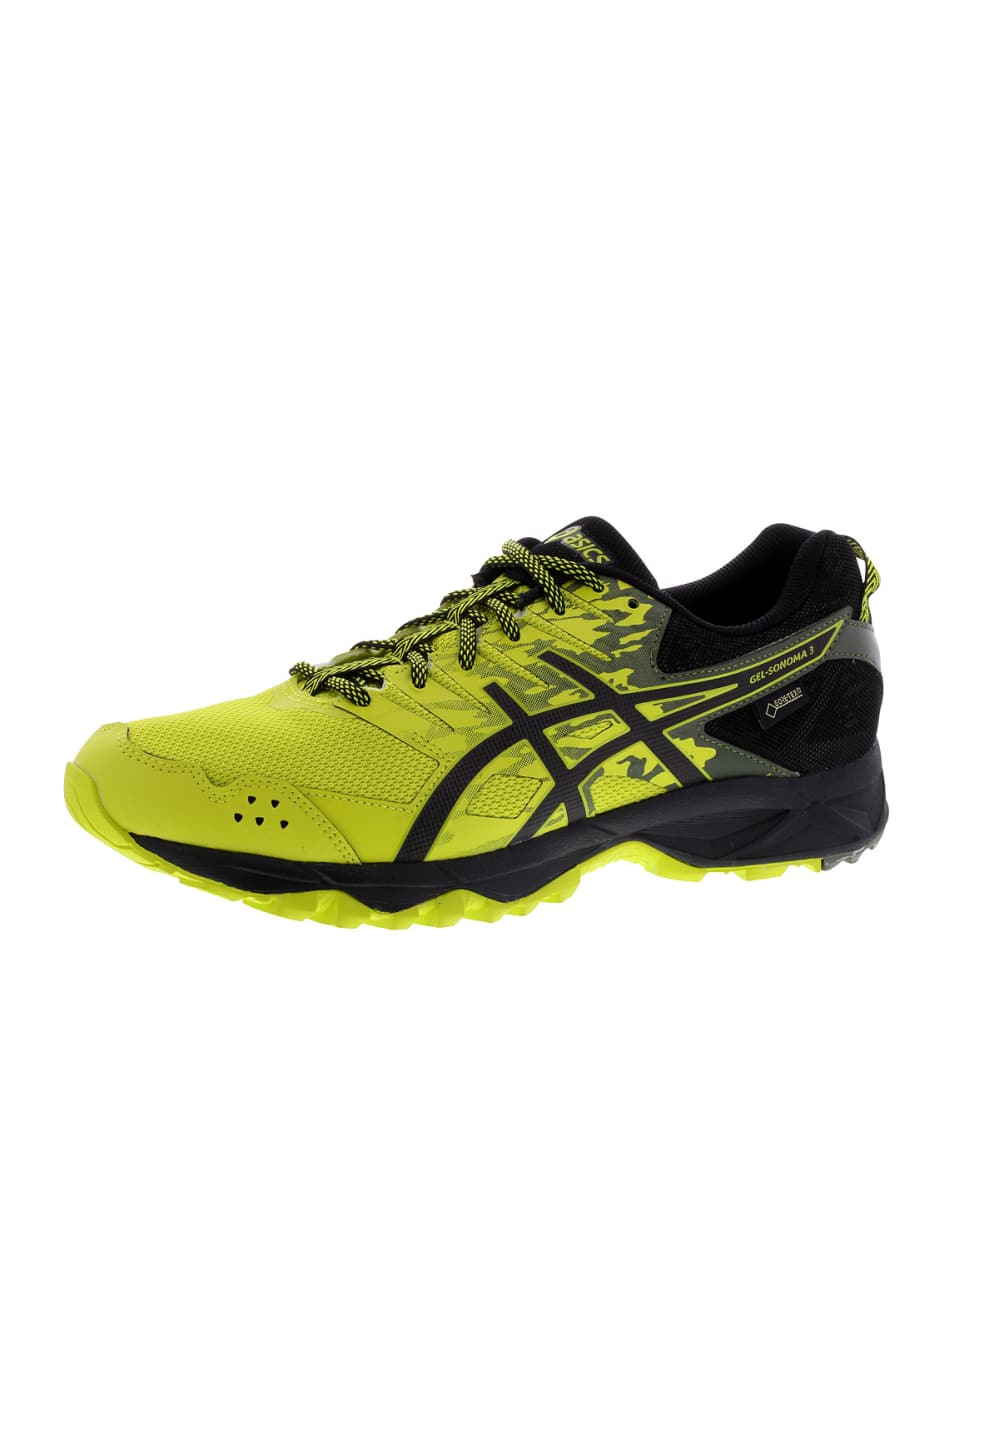 pretty nice 5c490 f7afa ASICS GEL-Sonoma 3 G-TX - Running shoes for Men - Black | 21RUN